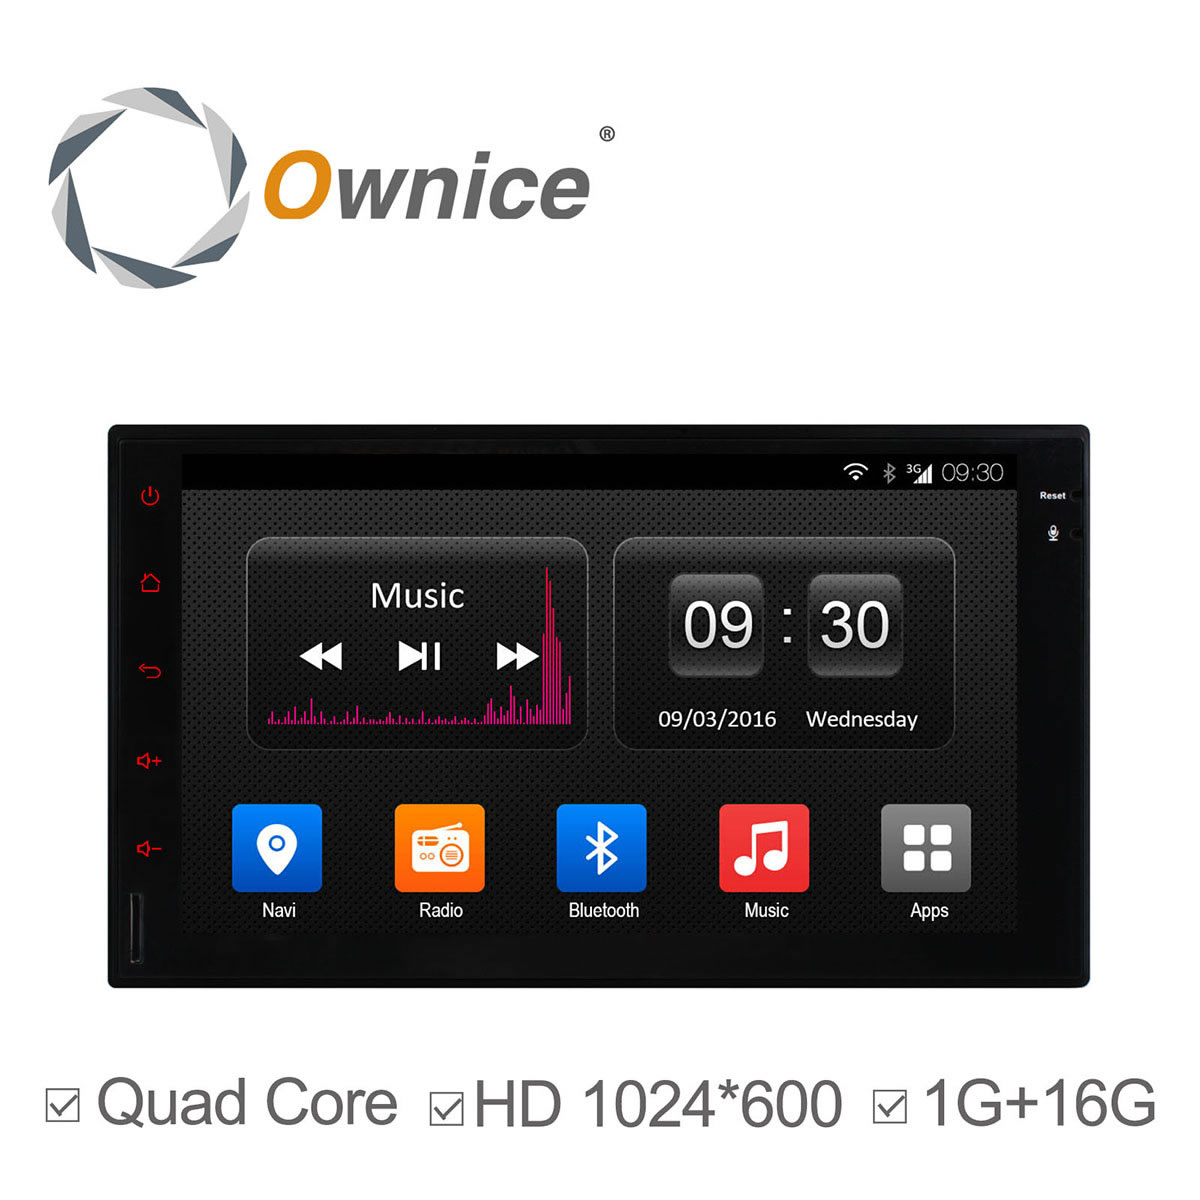 Ownice C300 2 Din Universal Android 4.4 Full Touch Panel GPS Navigation Car Radio Player Quad Core mirror link wifi bt No DVD android 5 1 car radio double din stereo quad core gps navi wifi bluetooth rds sd usb subwoofer obd2 3g 4g apple play mirror link